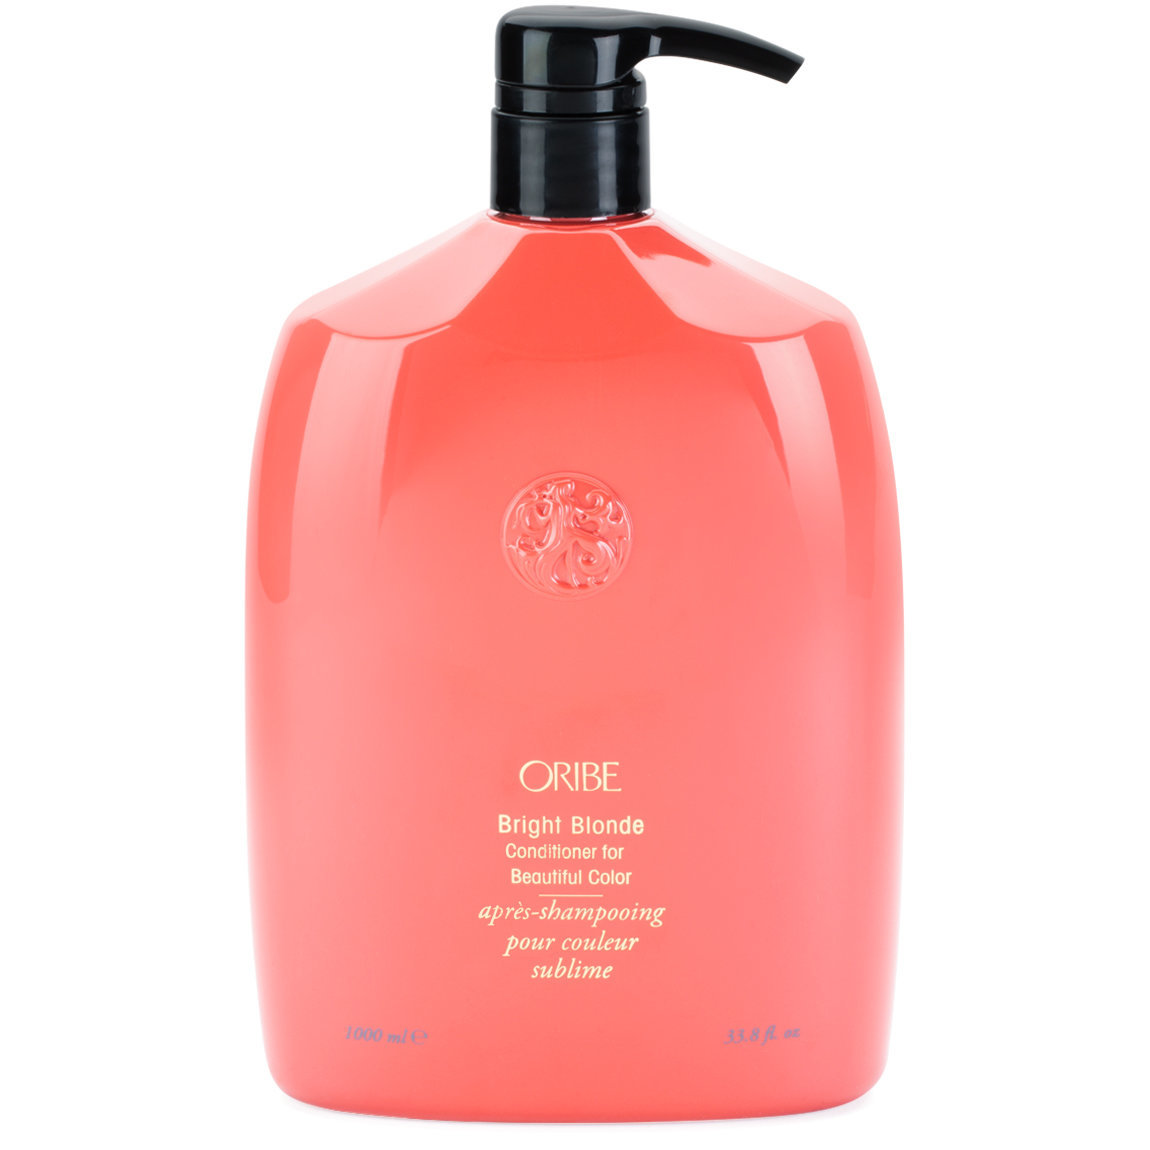 Oribe Bright Blonde Conditioner for Beautiful Color 1 L product smear.